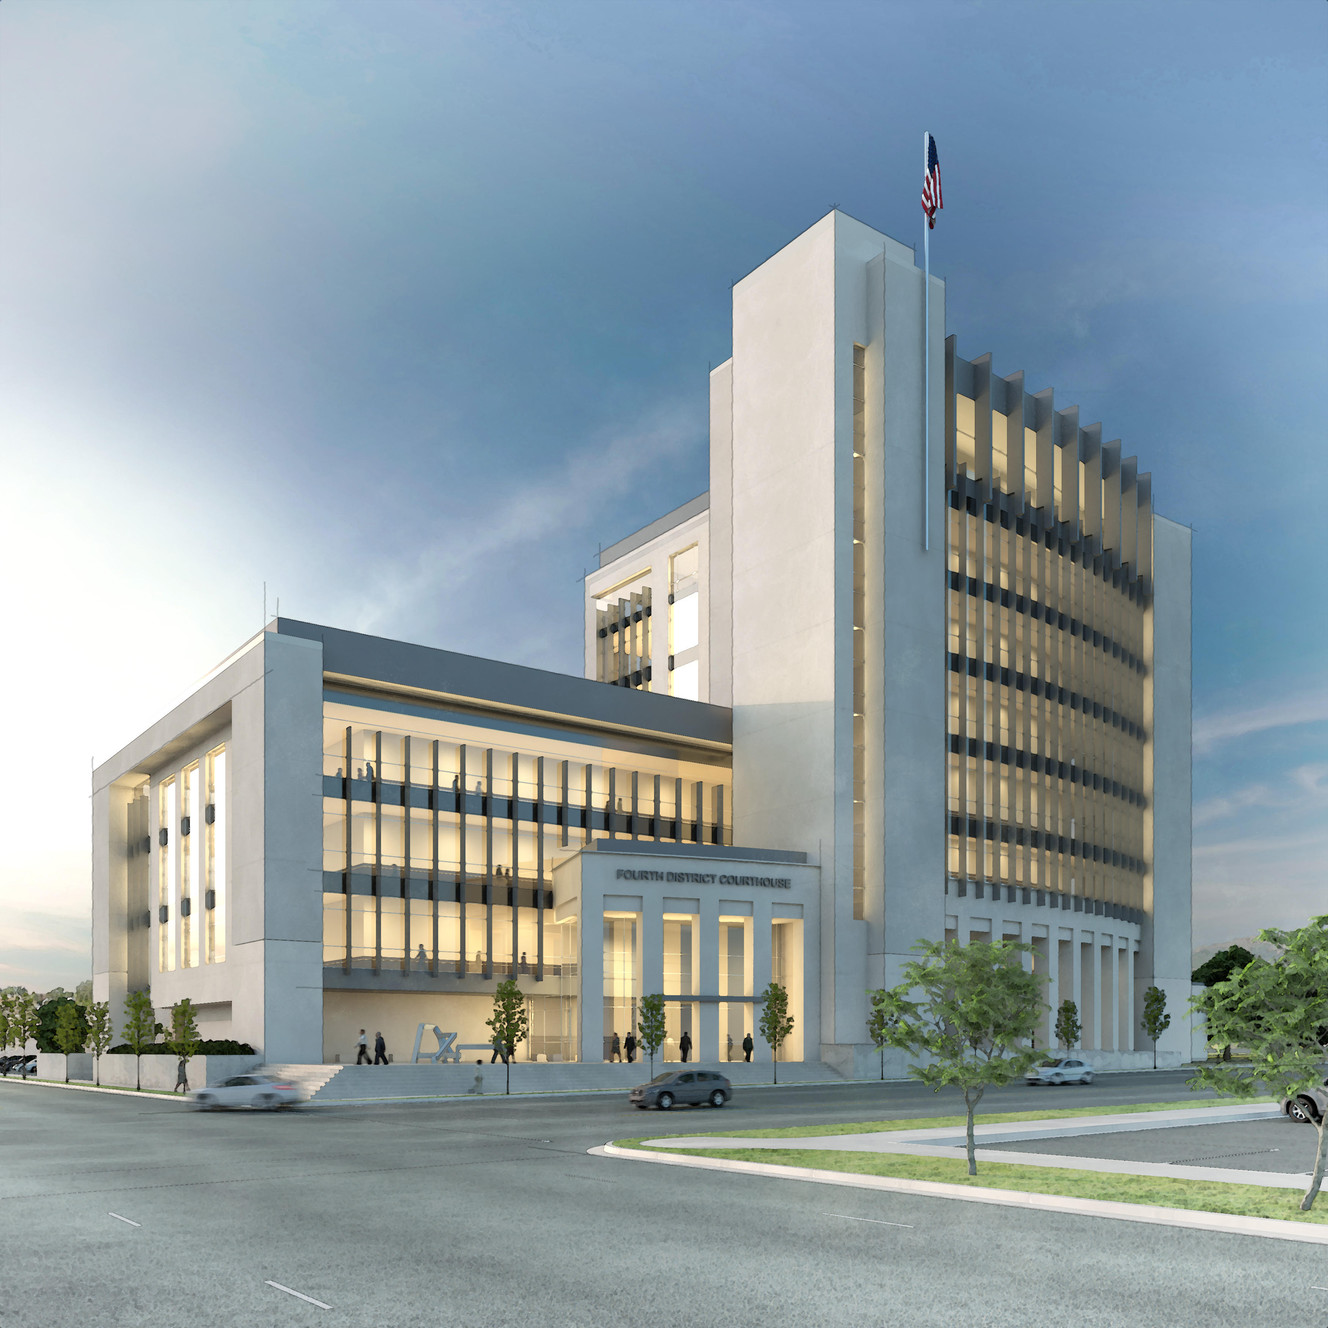 Groundbreaking held for new Provo courthouse